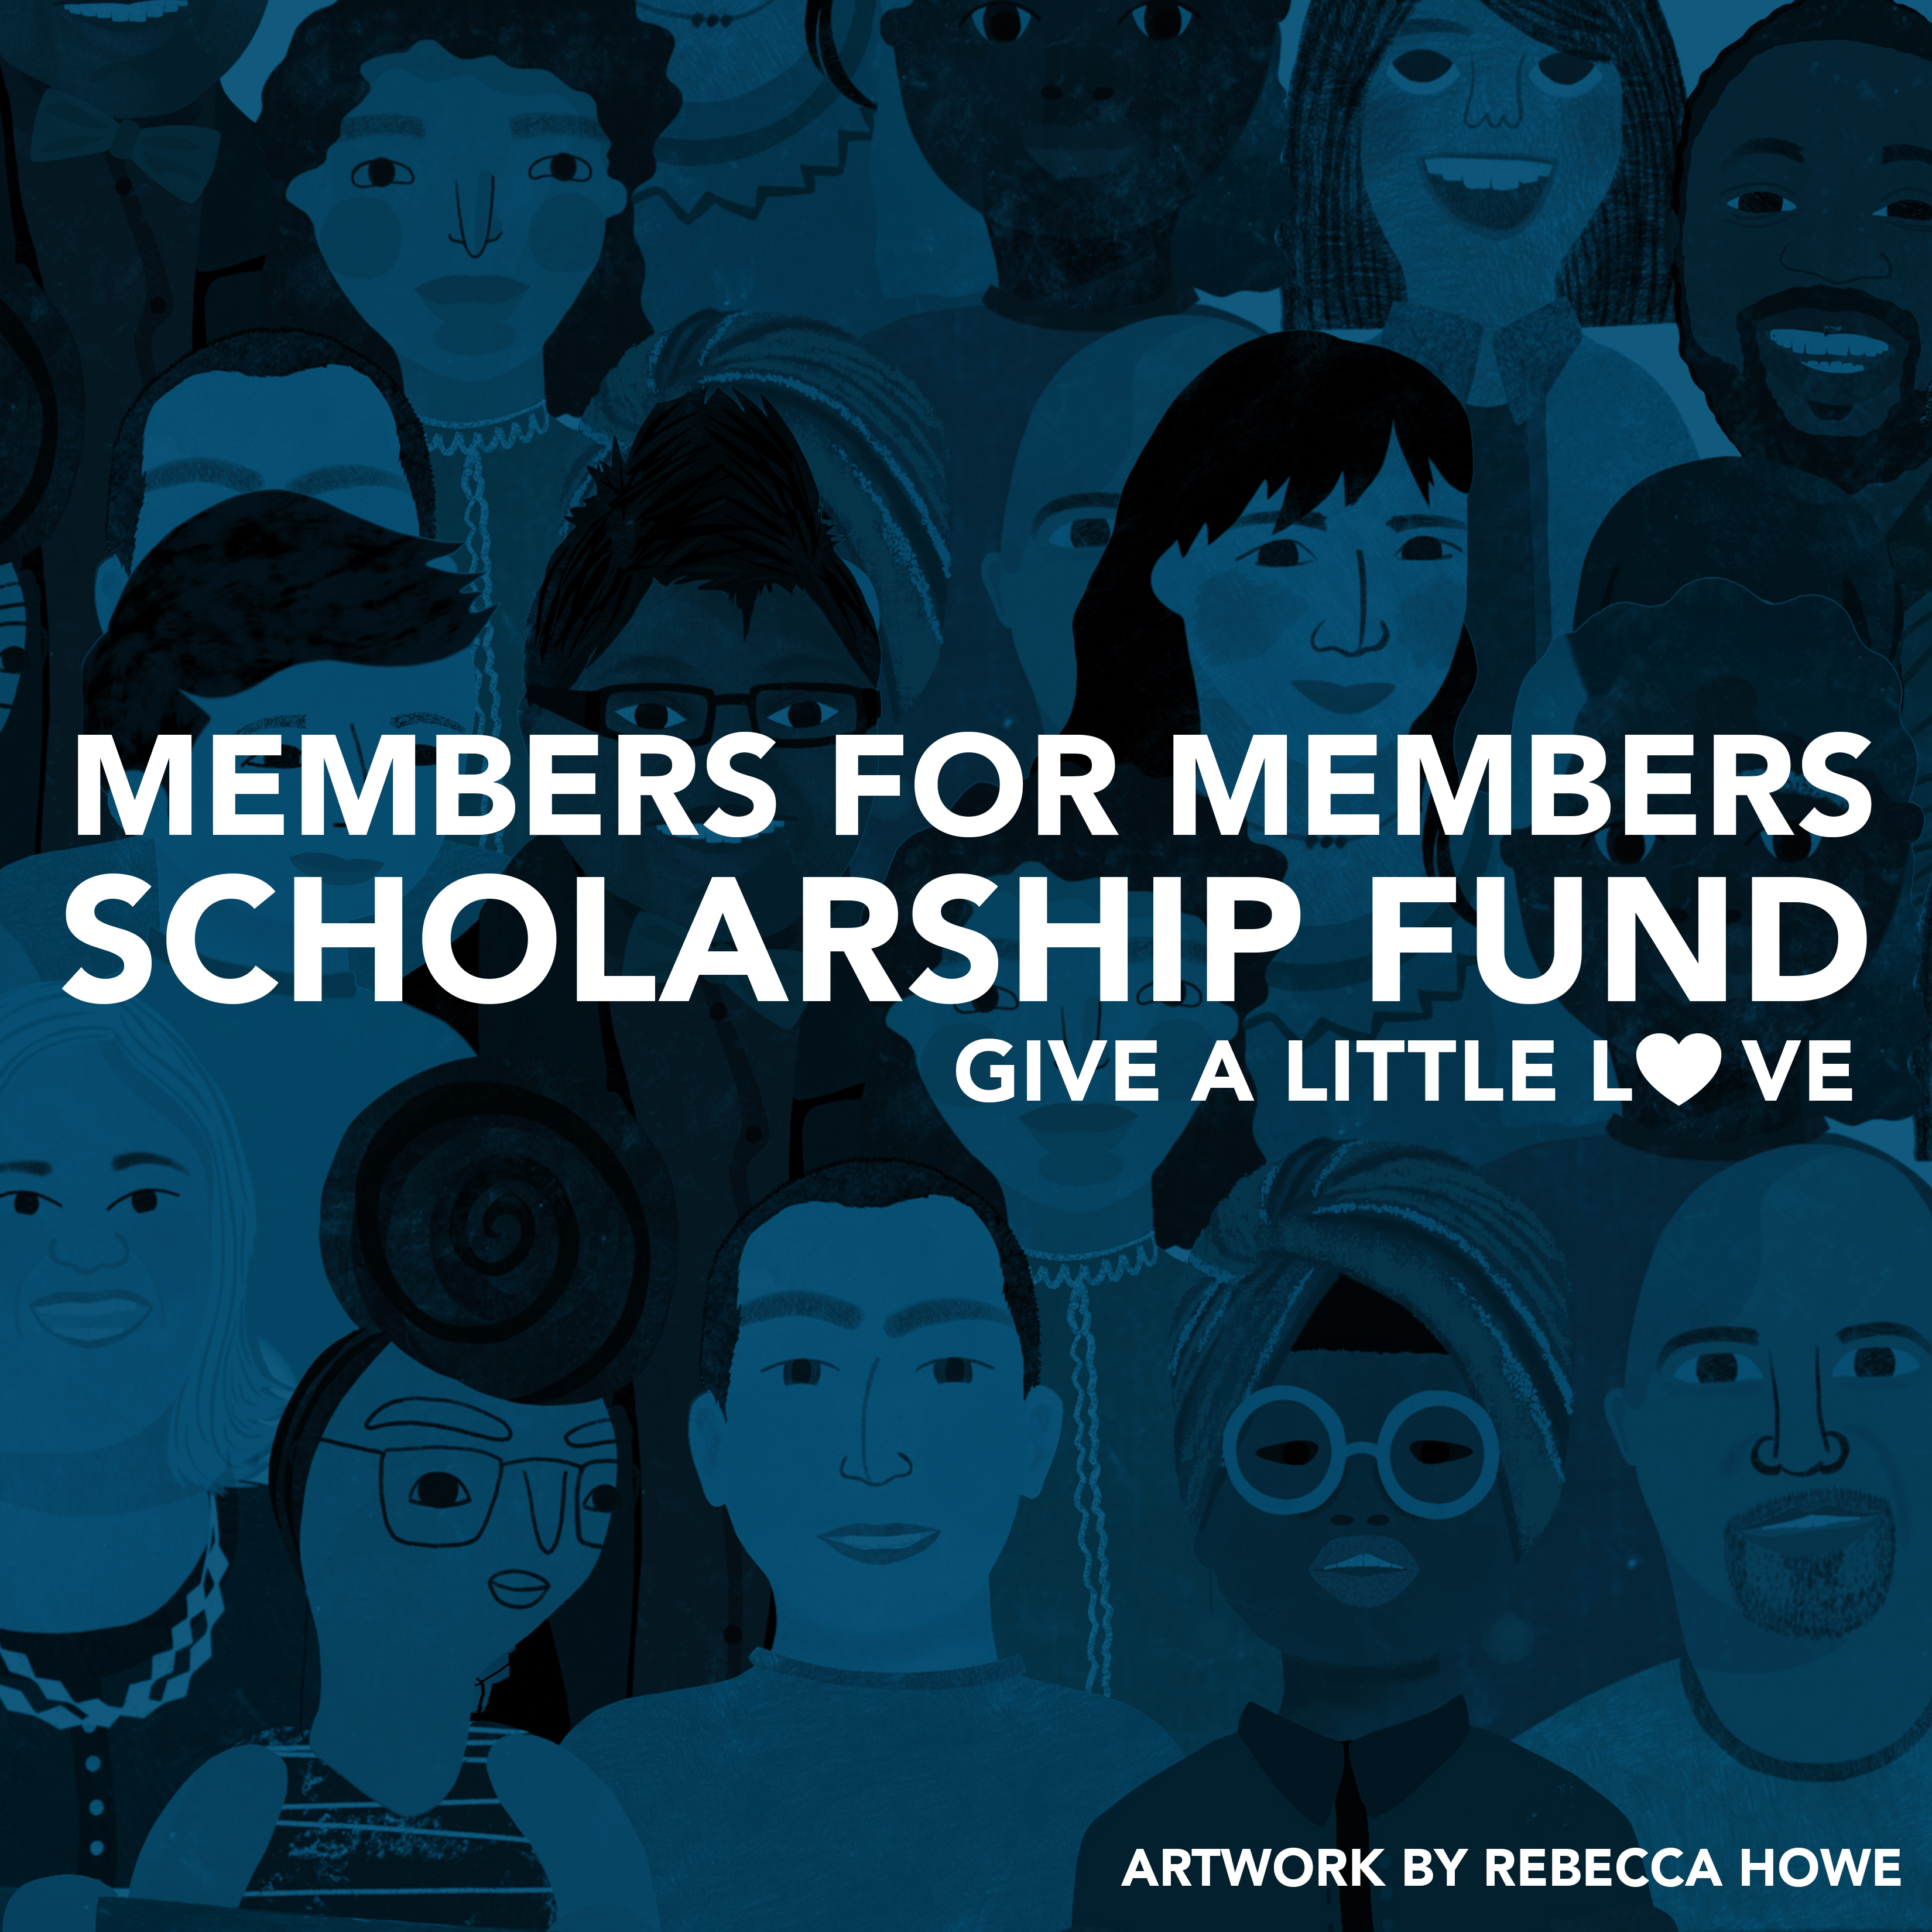 "Members For Members Scholarship Fund New Extended Deadline for the Members for Members Scholarship Fund Applications This M4M scholarship will be awarded to writers and/or illustrators who are Michigan residents and who wish to become members of SCBWI or to current SCBWI-Michigan members who fit the scholarship guidelines. Scholarship winners will receive a year's membership to SCBWI or in the case of current members, as an add-on to the current membership, OR funds may go towards an SCBWI-MI conference.   Awardees will have an interest in and are actively working toward creating children's books that resonate with diverse readers. We recognize all diverse experiences and seek applicants who promote inclusion and support underrepresented groups in children's publishing including, but not limited to, those marginalized due to race/ethnicity, disability, sexual orientation, gender and gender identity, socioeconomic status, geography, citizenship, and religion. The scholarship will offset the cost of an annual membership in SCBWI (which includes membership in SCBWI-Michigan and is currently $80.00 for full membership and $65.00 for student membership) or may be applied towards an SCBWI-MI conference.  This grant is sponsored by donations from current SCBWI-Michigan members. The number of awards will be determined by donations to this scholarship fund.  Extended Deadline:  Submissions are open through June 1, 2020. The winner(s) of the scholarships will be announced on or about June 15.   Guidelines: This award is open to persons who live in Michigan.  Please collect the following information in the body of an email:  1.)  Full name and contact information: mailing address, email address, social media handles, and phone number. Indicate if you are a current SCBWI member. 2.)  Provide a brief description about works-in-progress or those in the planning stages and how your WIP meets the criteria established above.  3.)  Include a statement about why you want to become a member of SCBWI. What in kidlit captures your motivation and commitment? Indicate your school or college and program if applying as a student member. 4.) Include a brief statement of financial need. Please do not provide any personal income information.   Address the email to our SCBWI-MI Regional Advisors: Carrie Pearson (michigan-ra2@scbwi.org and Jodi McKay (michigan-ra@scbwi.org). Fill in the subject line with: Members for Members Scholarship Application. Provide the requested information in the body of the email letter and send. Questions? ohaginib@gmail.com  Diversity, Equity, and Inclusion (DEI) Committee Chair Interested in making a donation to support our Members For Members Scholarship Fund? You can send your donation via PayPay or by check. By PayPal: donations made through our SCBWI MI PayPal account should read, ""M4M Scholarship"" email address is michigan-ra@scbwi.org By check: make your check payable to SCBWI-MI with a note to read,"